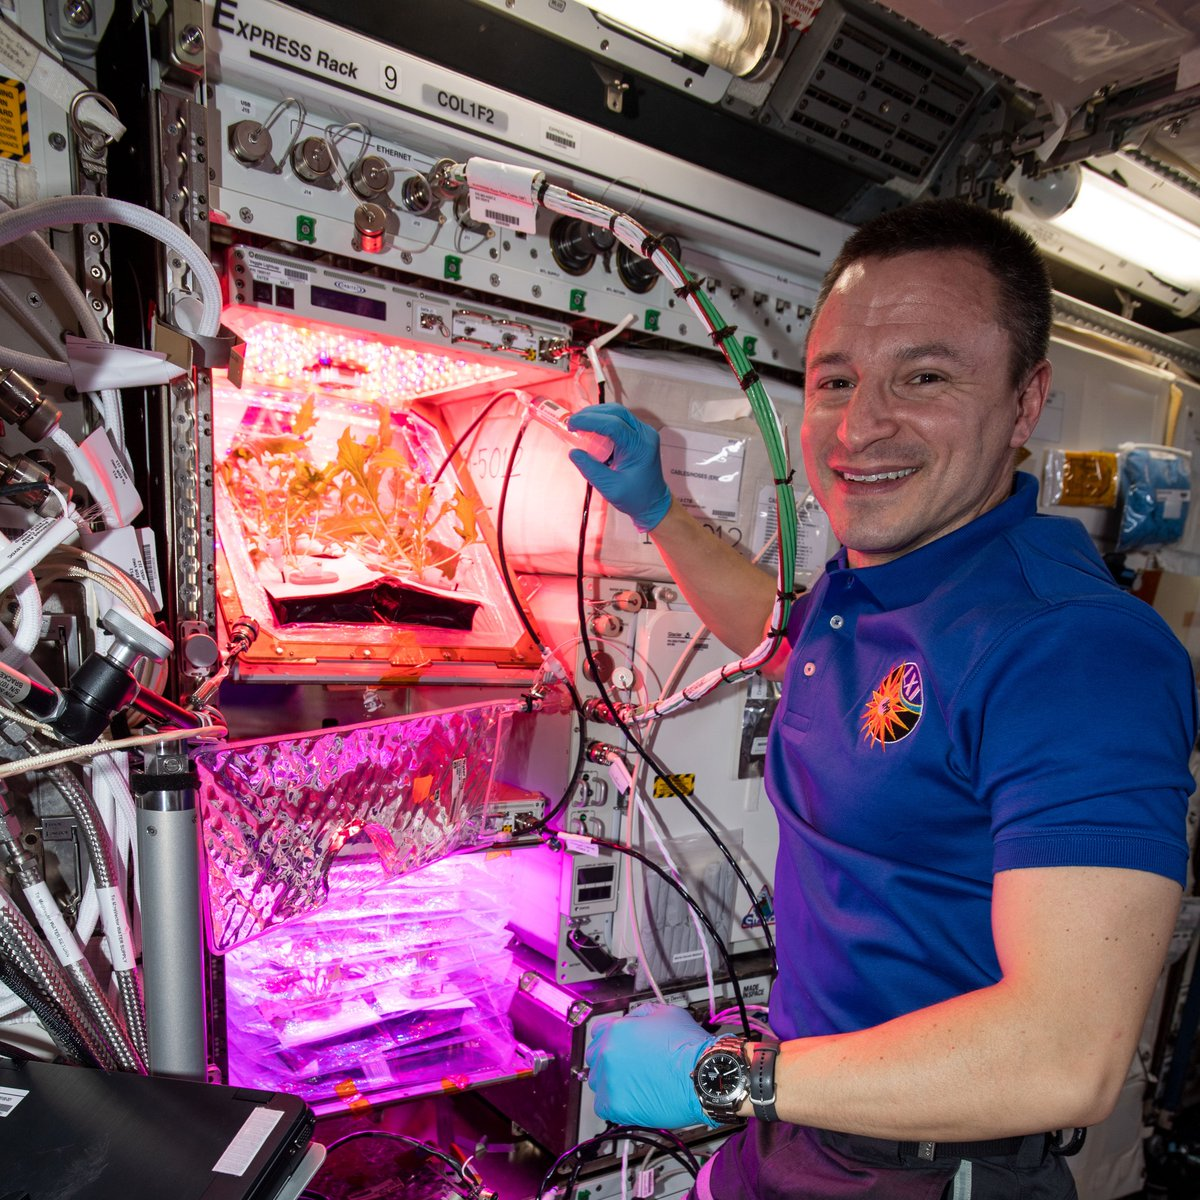 How do you grow plants in space? NASA's Human Research Program studies how growing plants in space will be an important part of an astronaut's job for food sustainability & nutrition on deep space missions: https://t.co/WH1JlB85Dm https://t.co/yH02tMLIVI